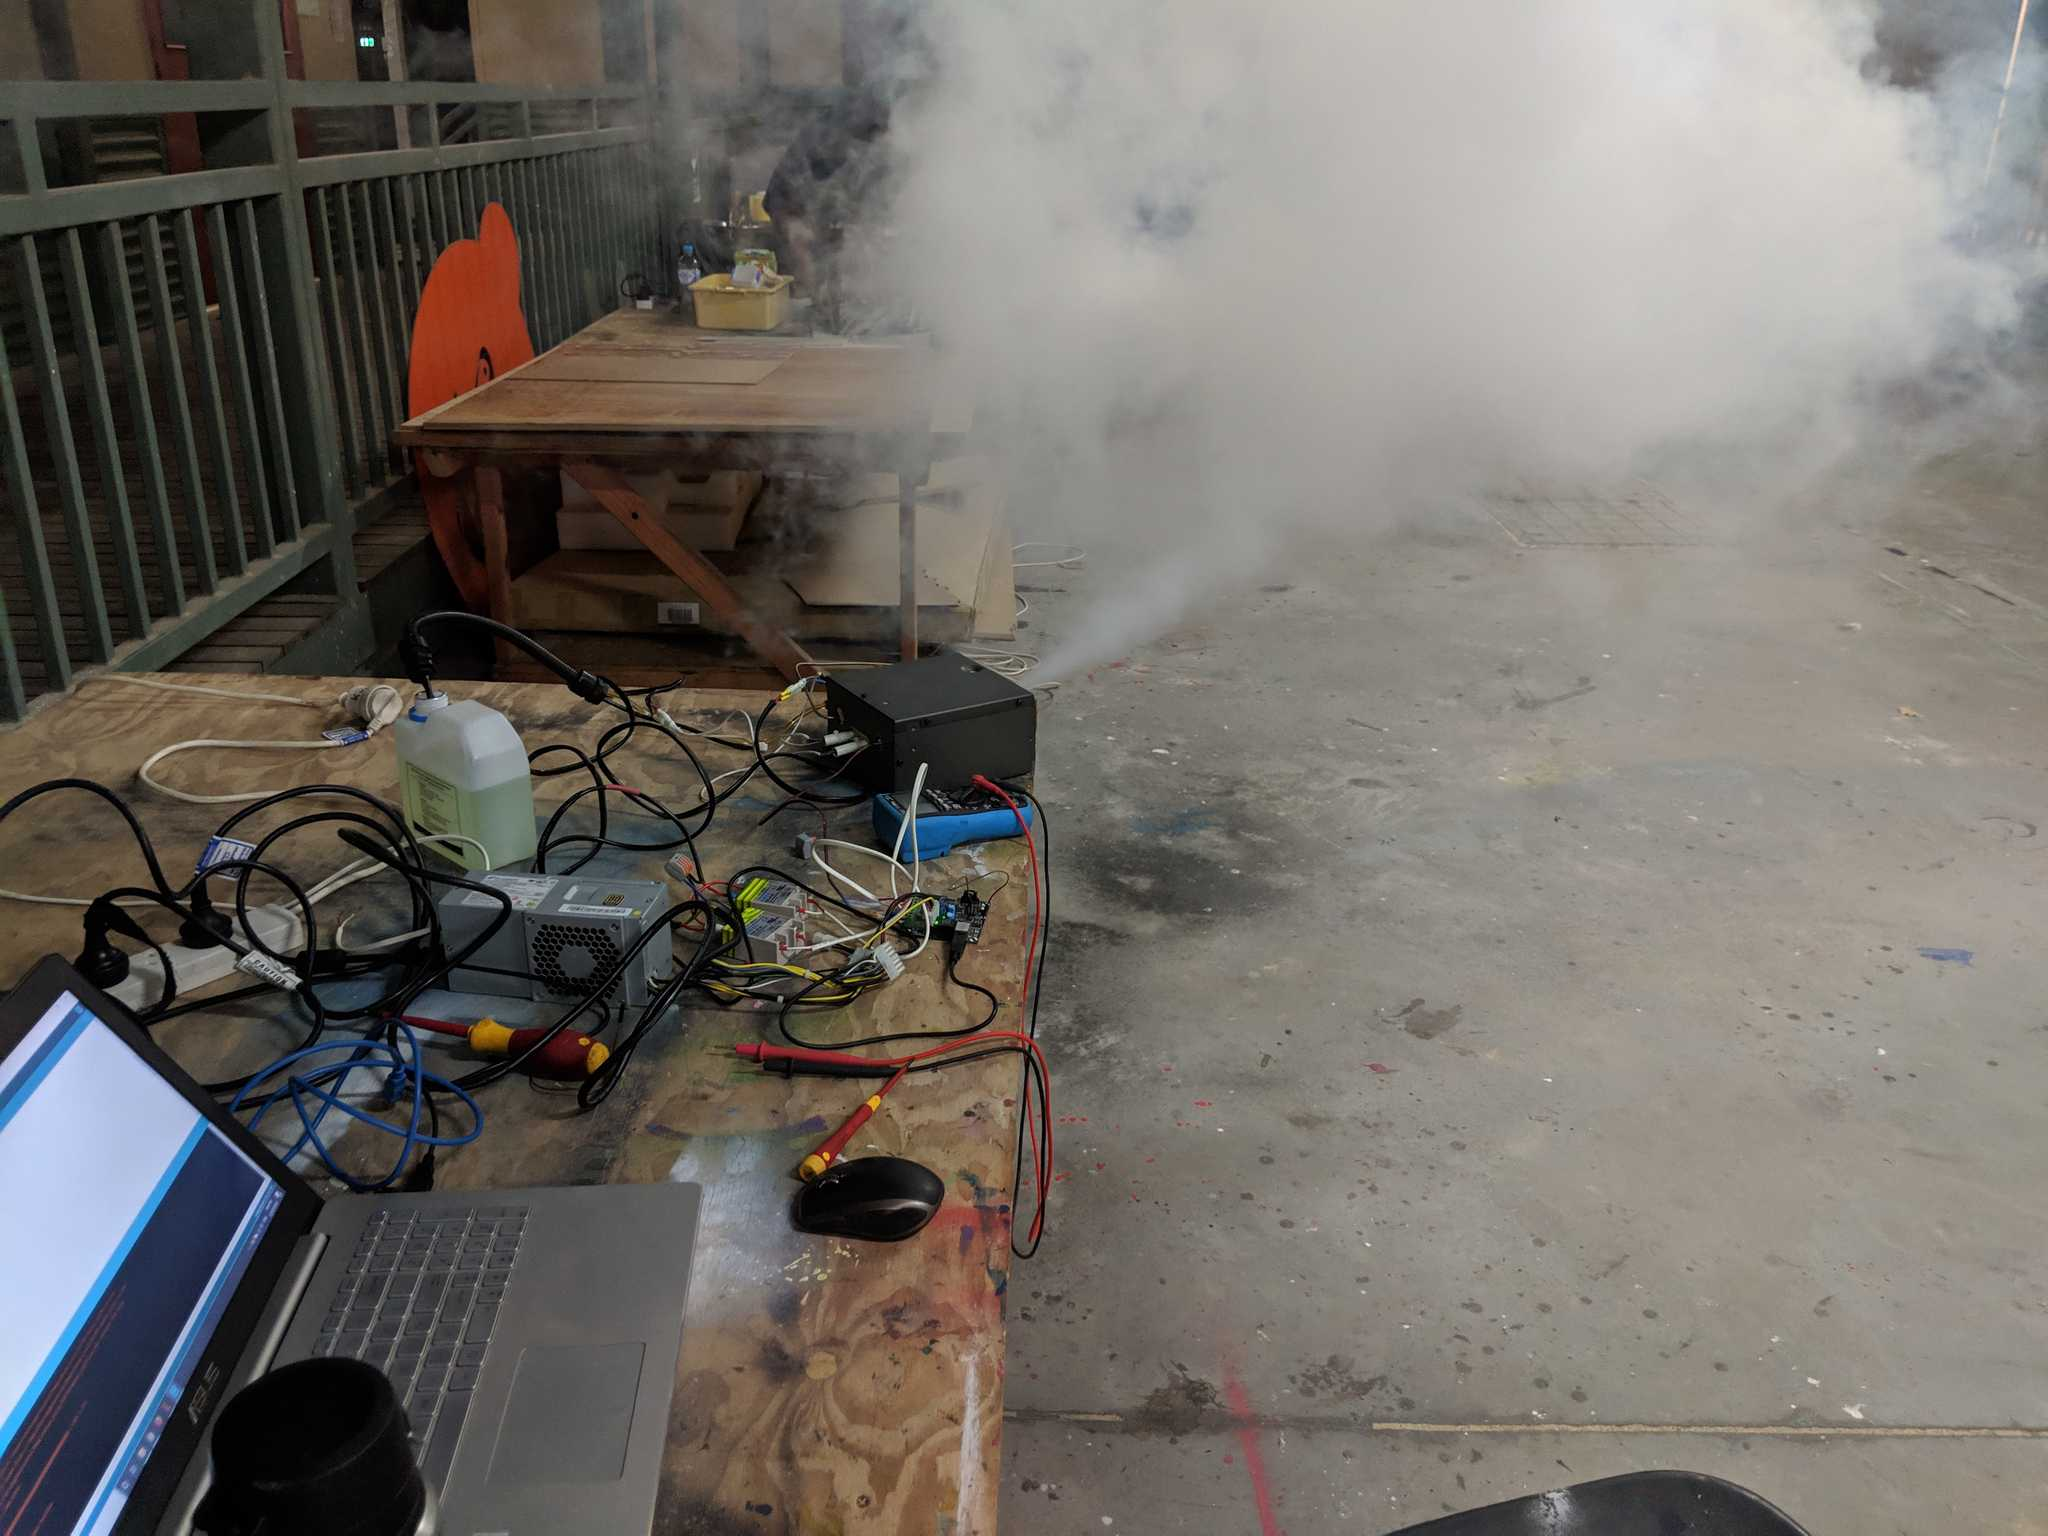 Smoke machine components being proto-typed for an art installation.